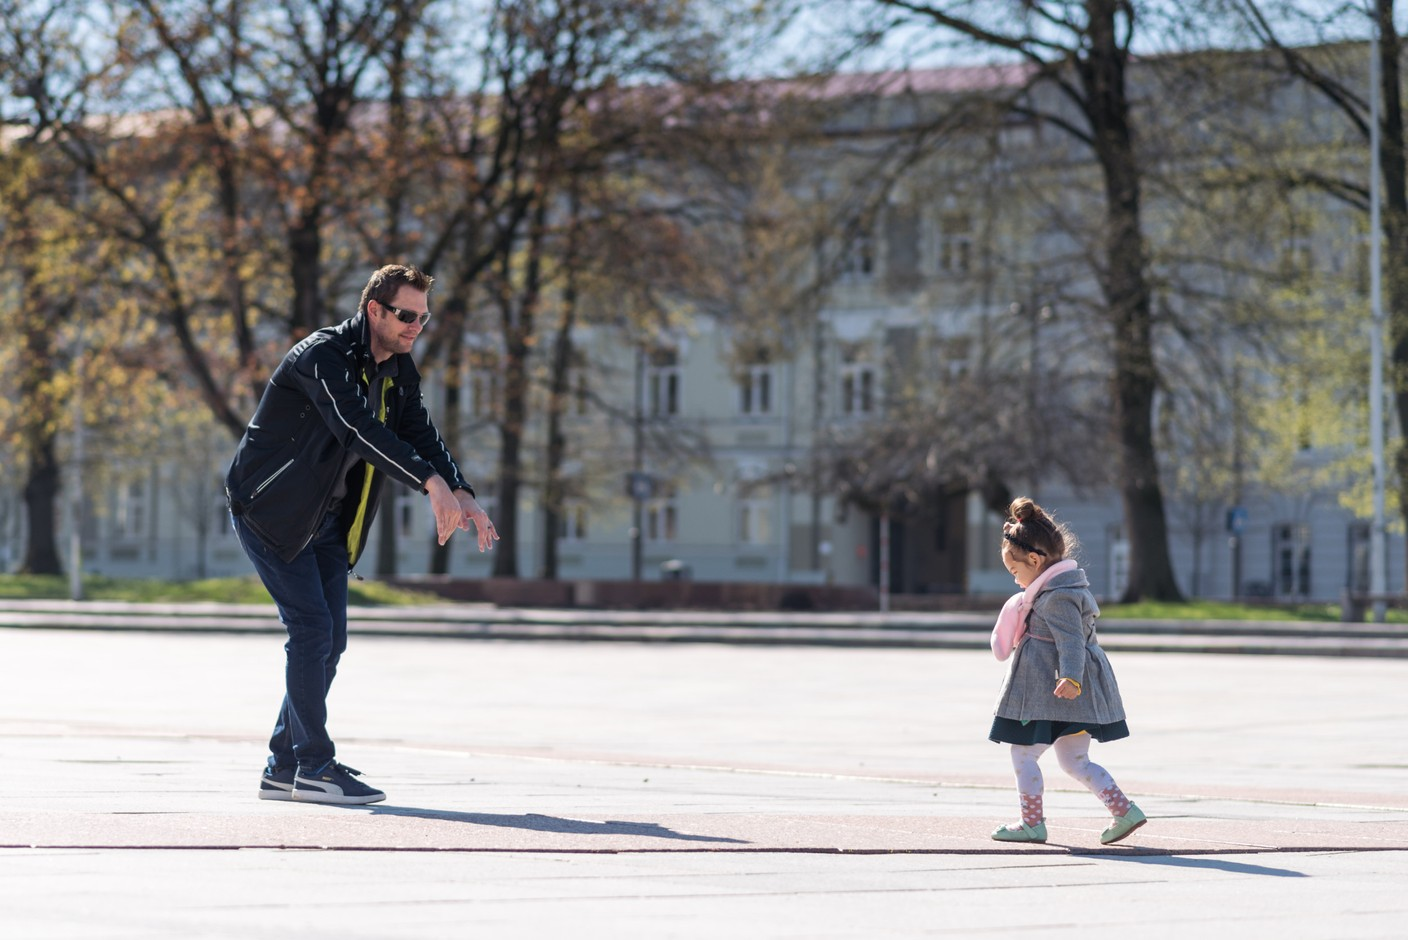 Despite the increase in the tax credit and family allowances, a gap in net disposable income persists between single-parent families and married couples, according to the activist group Collectif Monoparental. Photo: EC